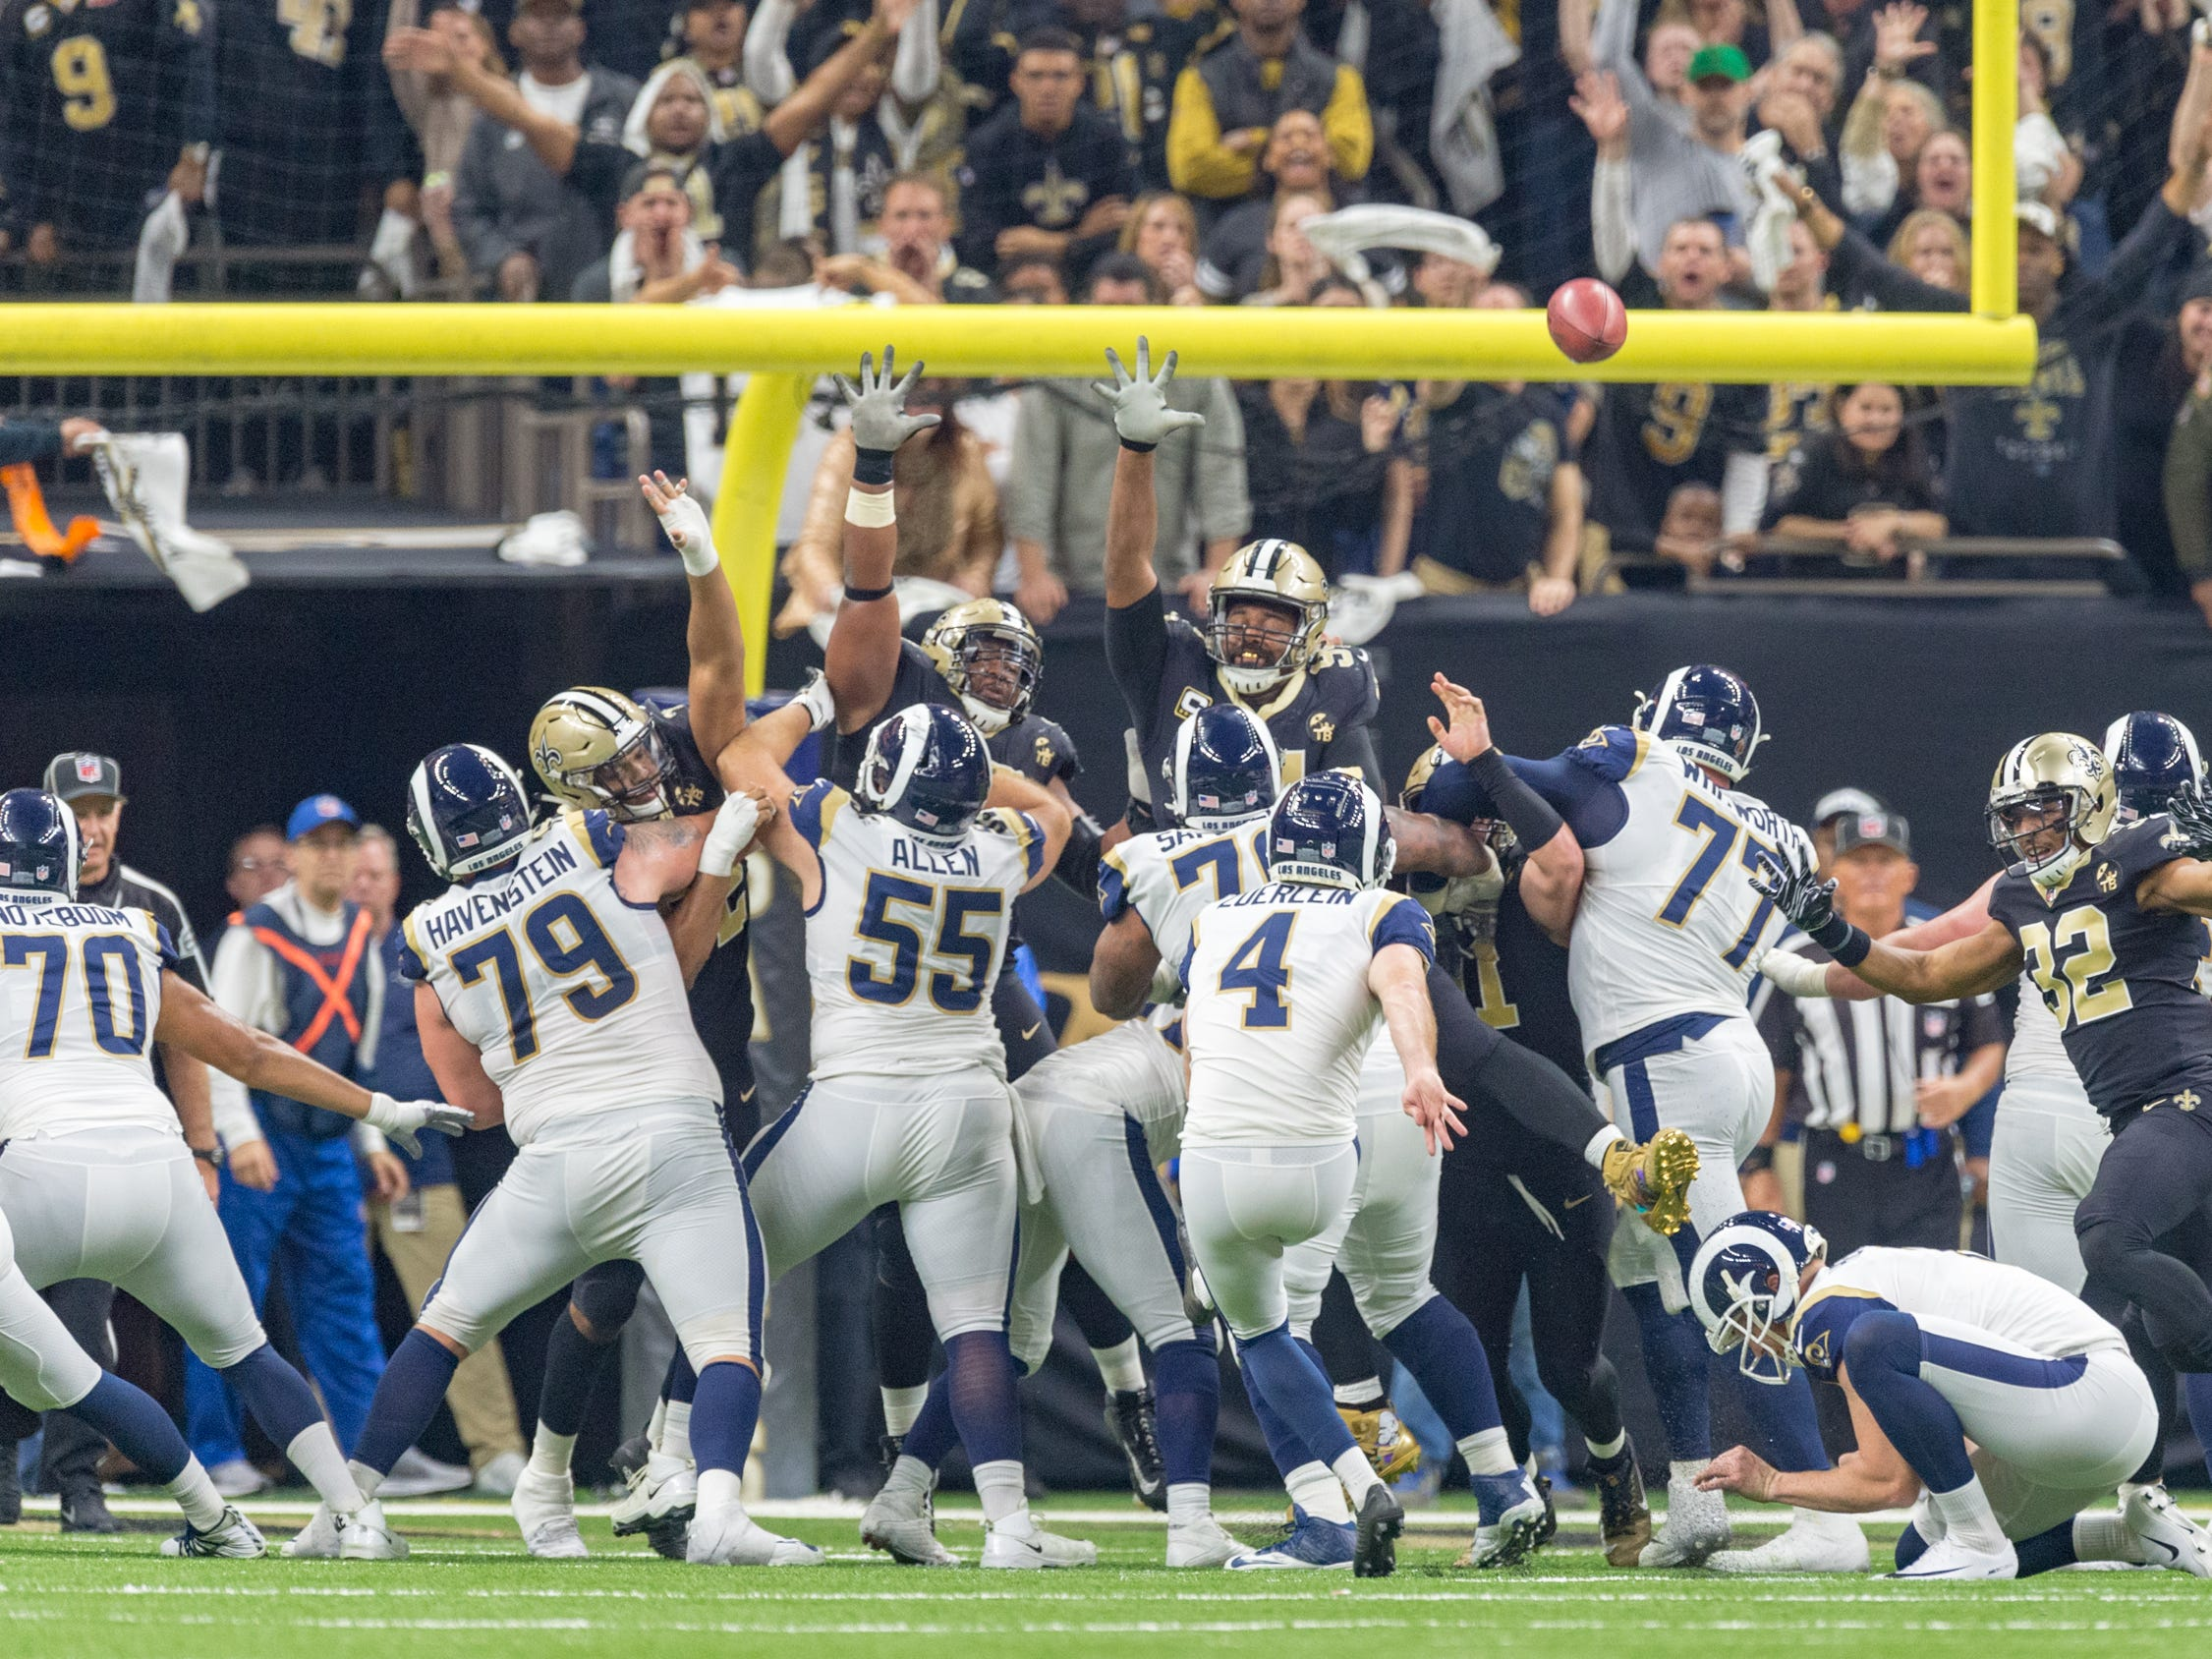 Rams kicker Greg Zuerlein kicks a field goal in overtime to win the NFC Championship playoff football game between the New Orleans Saints and the Los Angeles Rams at the Mercedes-Benz Superdome in New Orleans. Sunday, Jan. 20, 2019.